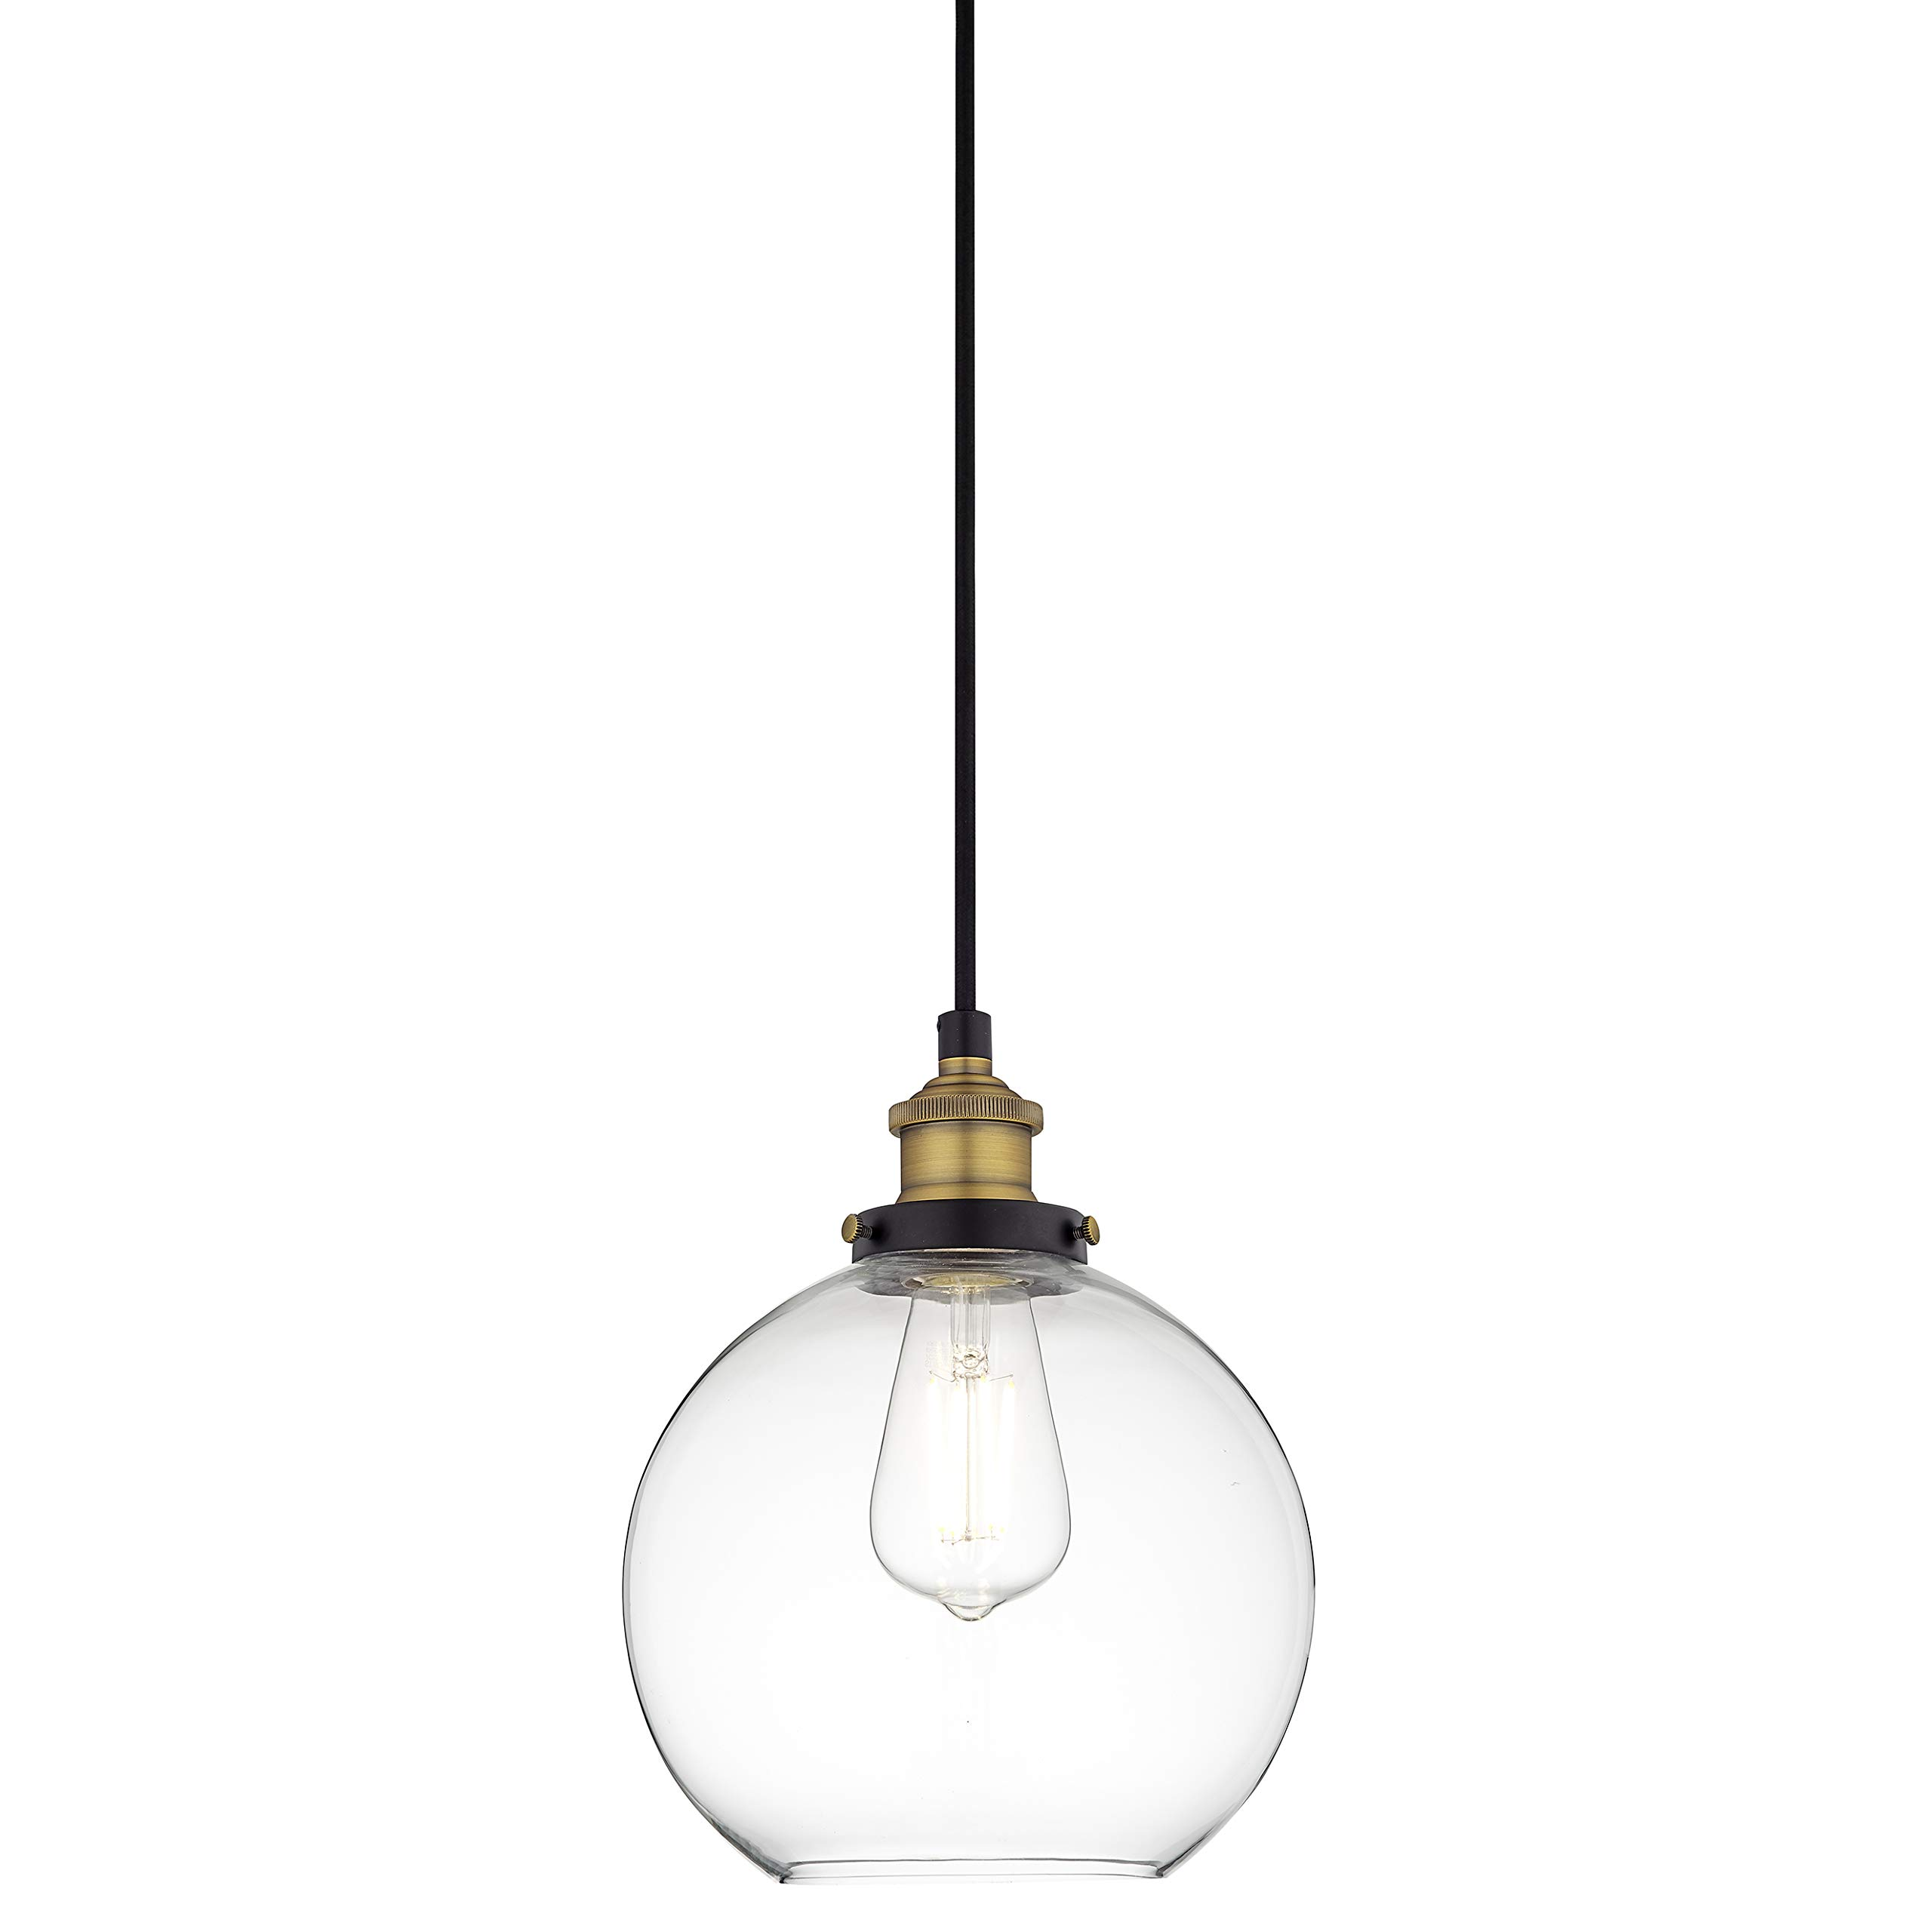 Primo Industrial Kitchen Pendant Light - Antique Brass Hanging Fixture - Linea di Liara LL-P429-AB by Linea di Liara (Image #3)